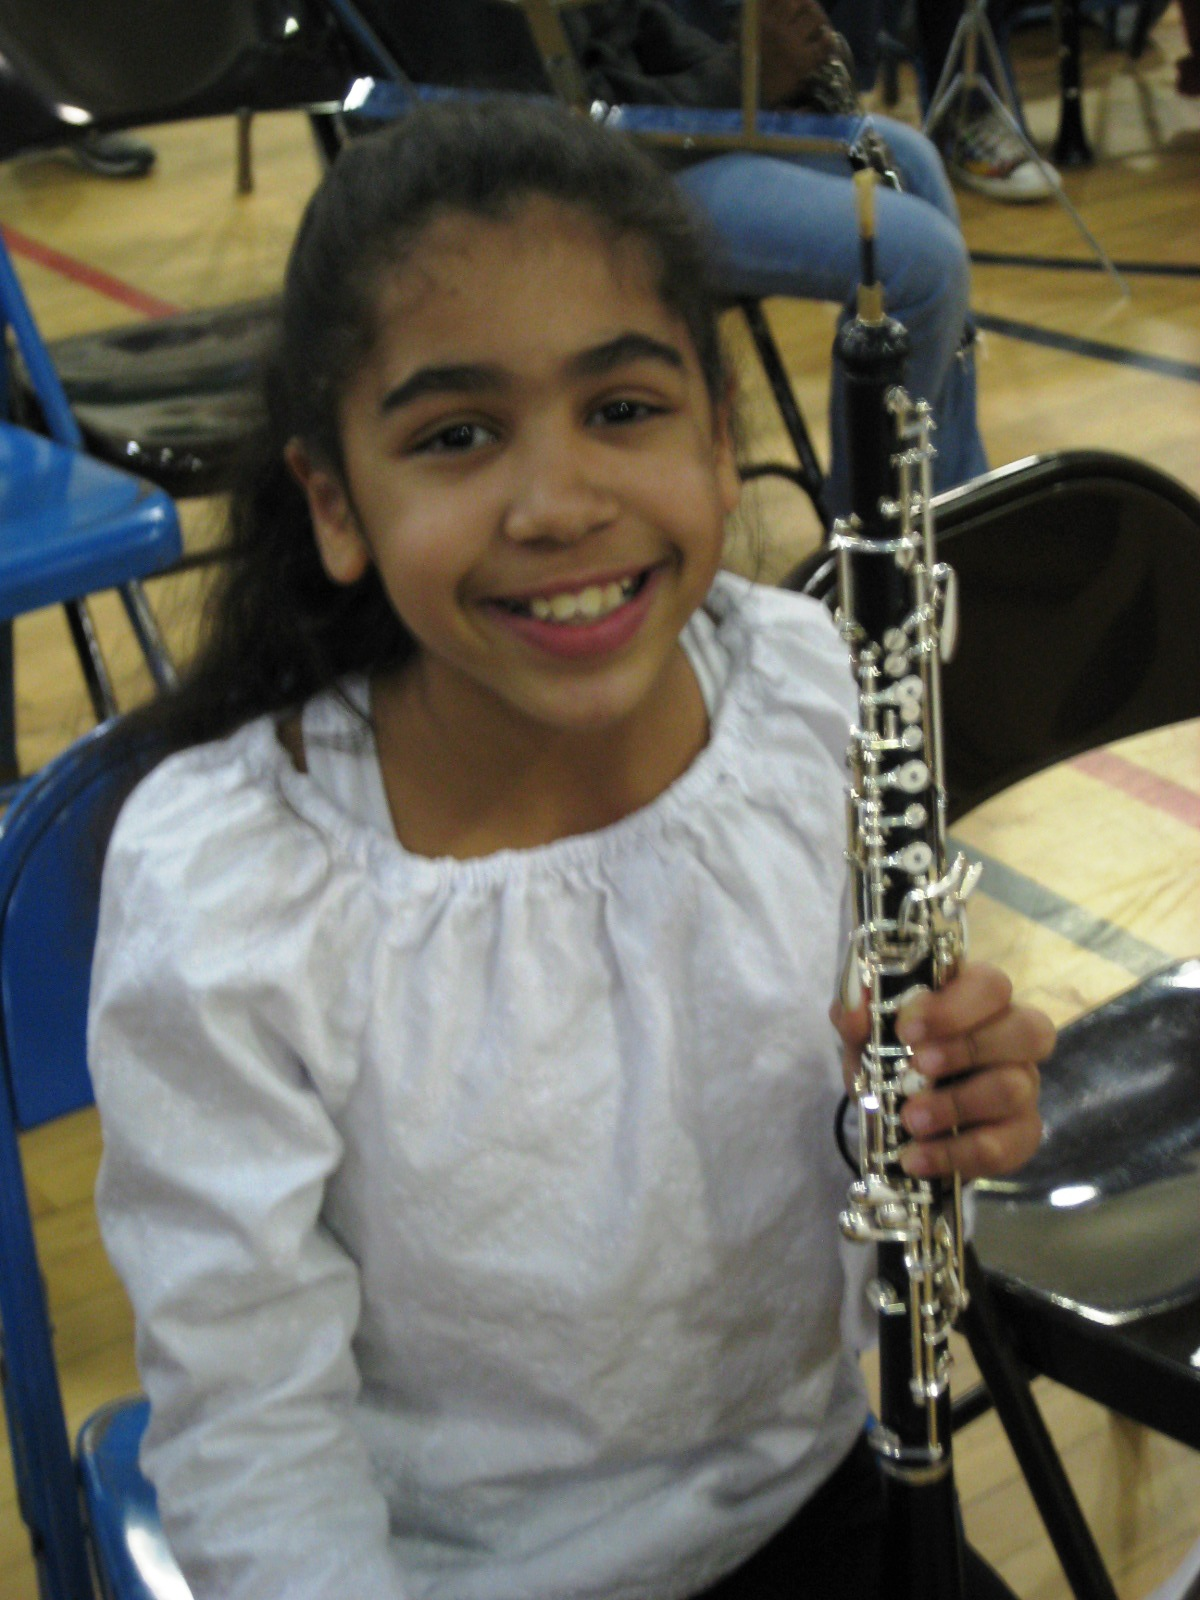 Hannah in the band